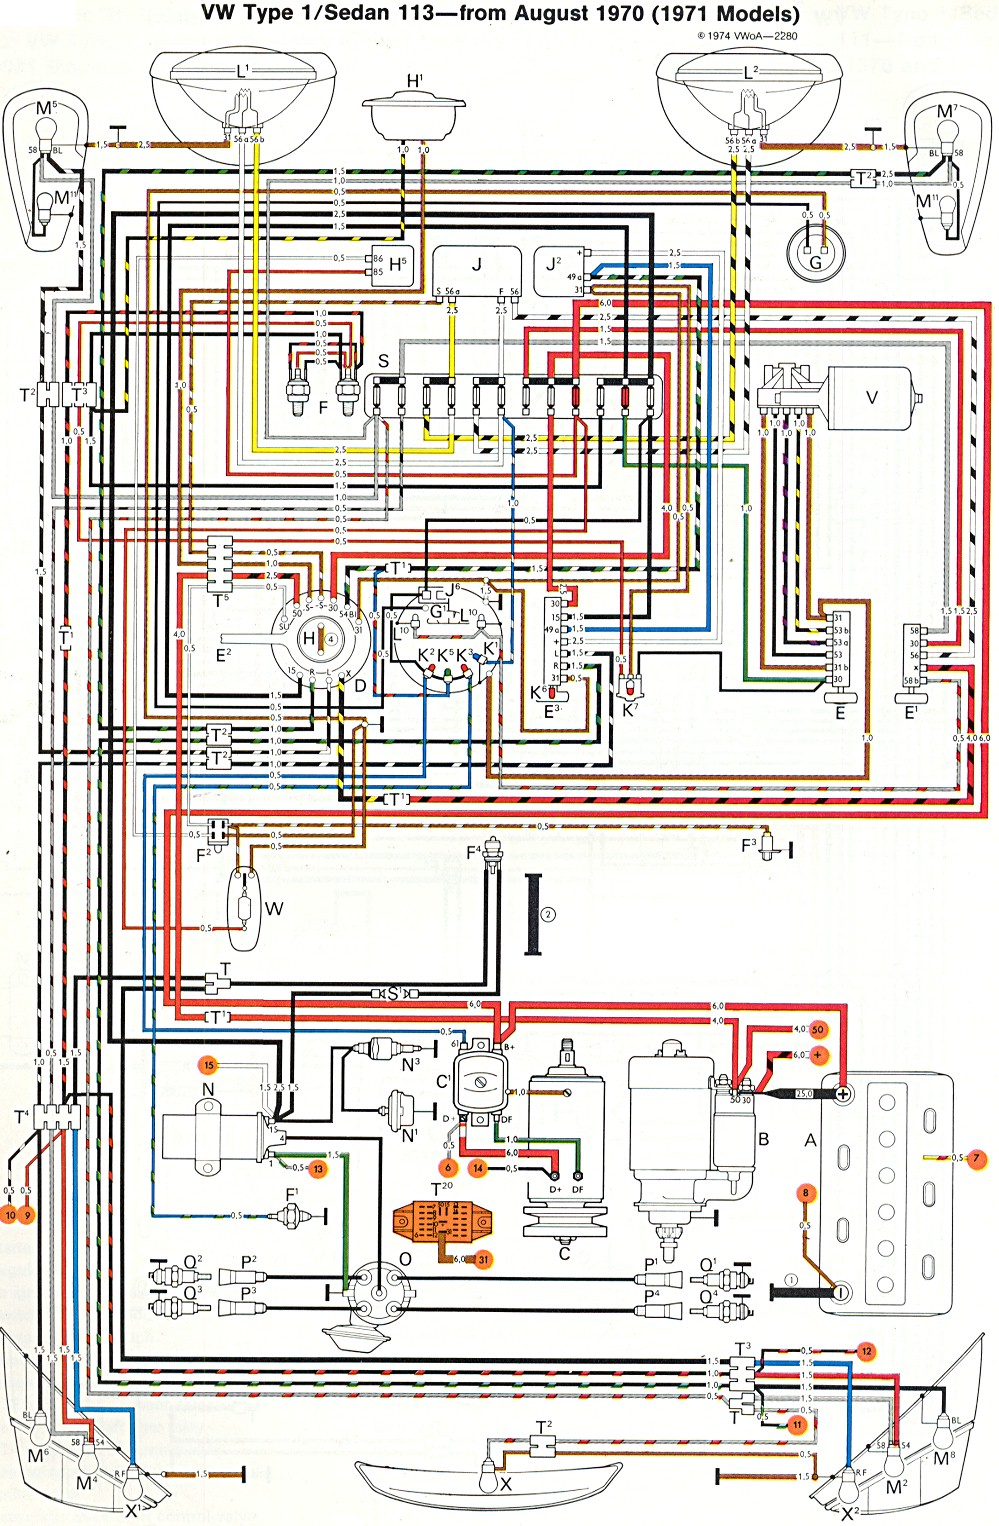 bug_super_71 1971 super beetle wiring diagram thegoldenbug com 1971 vw beetle wiring diagram at nearapp.co